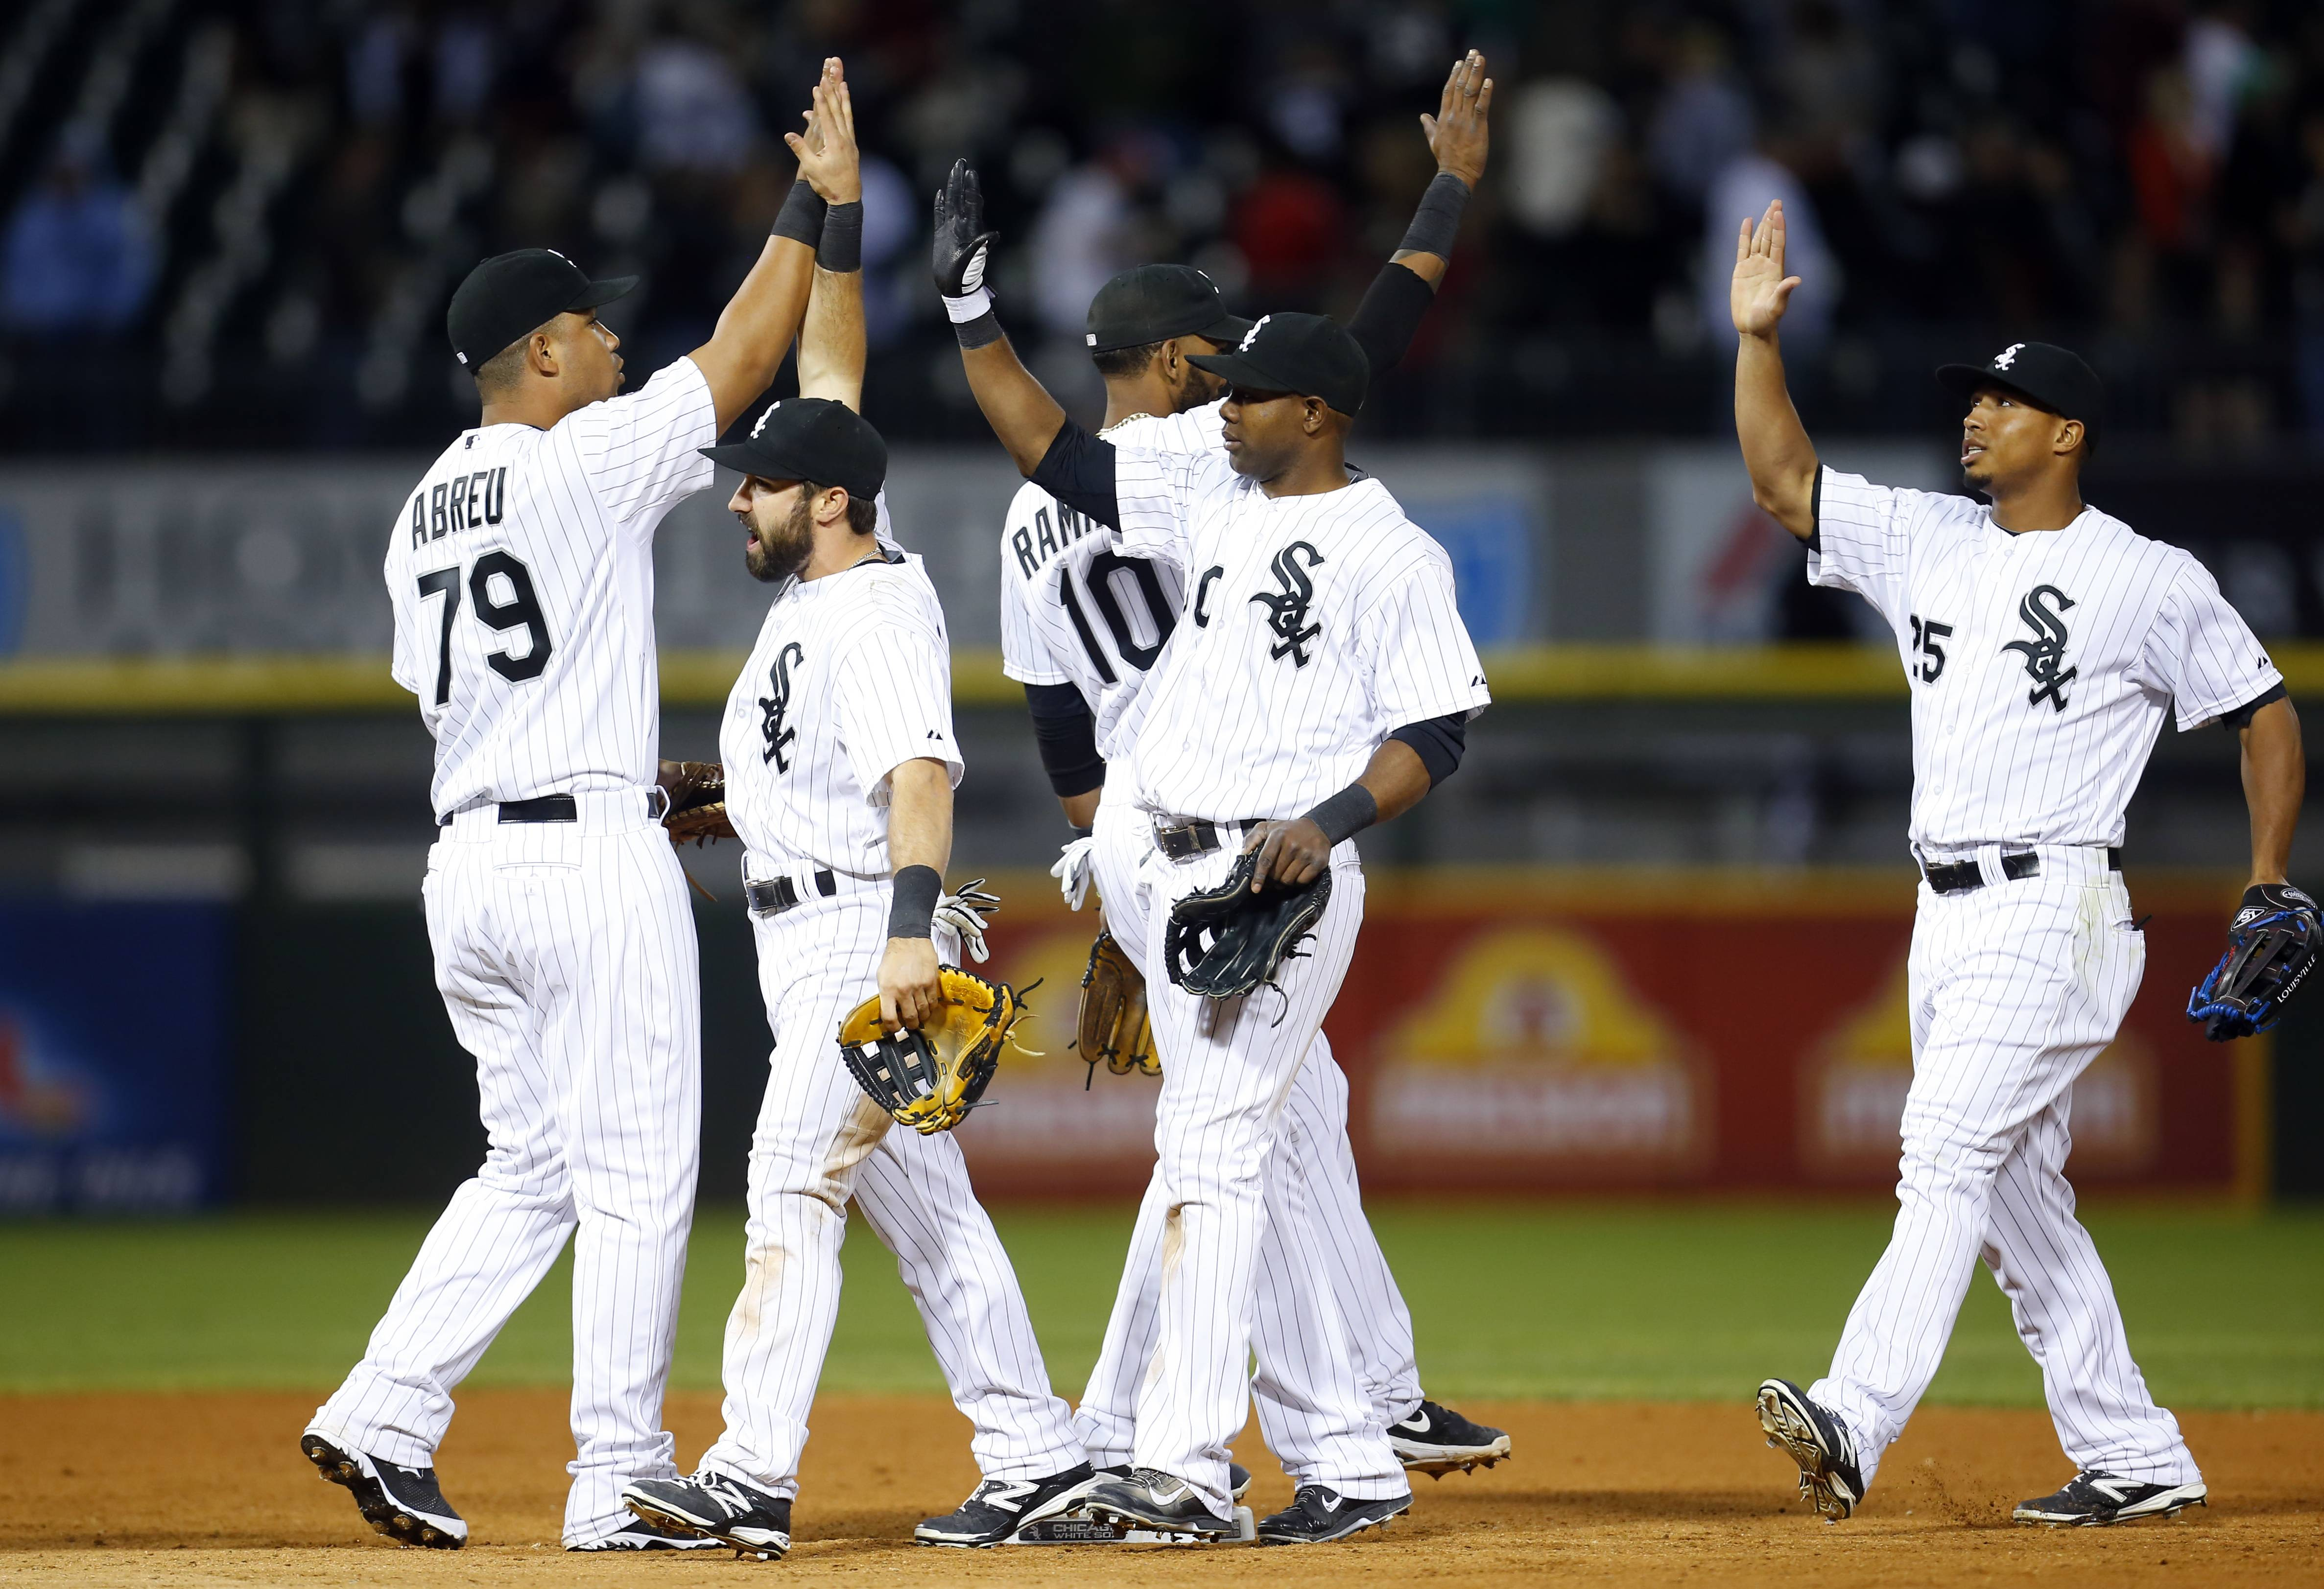 The White Sox celebrate after defeating the Detroit Tigers 6-5 on Monday night.